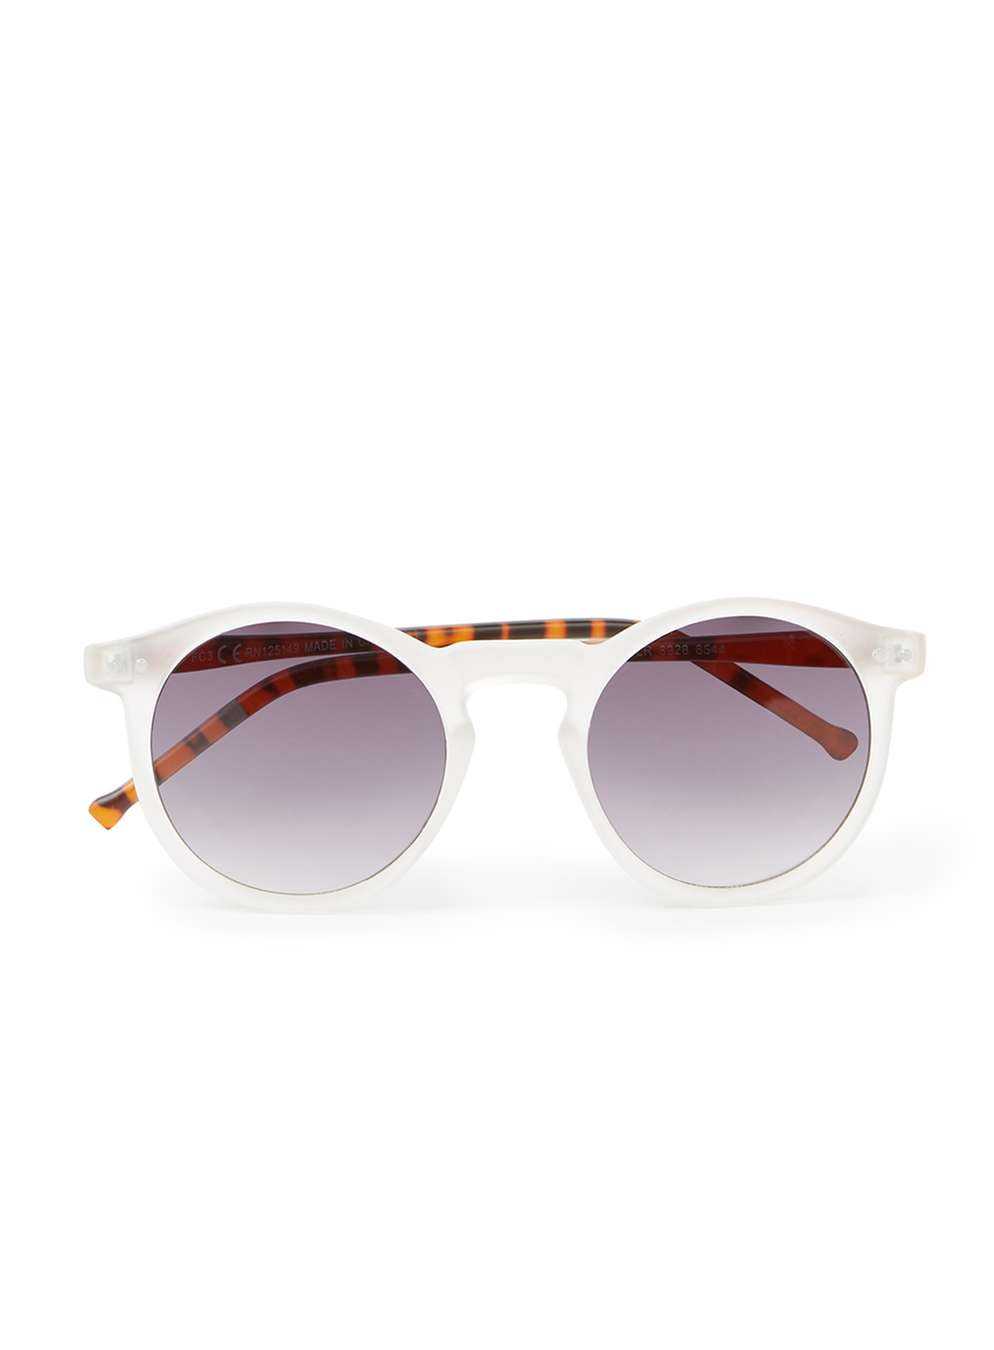 Topman Sunglasses